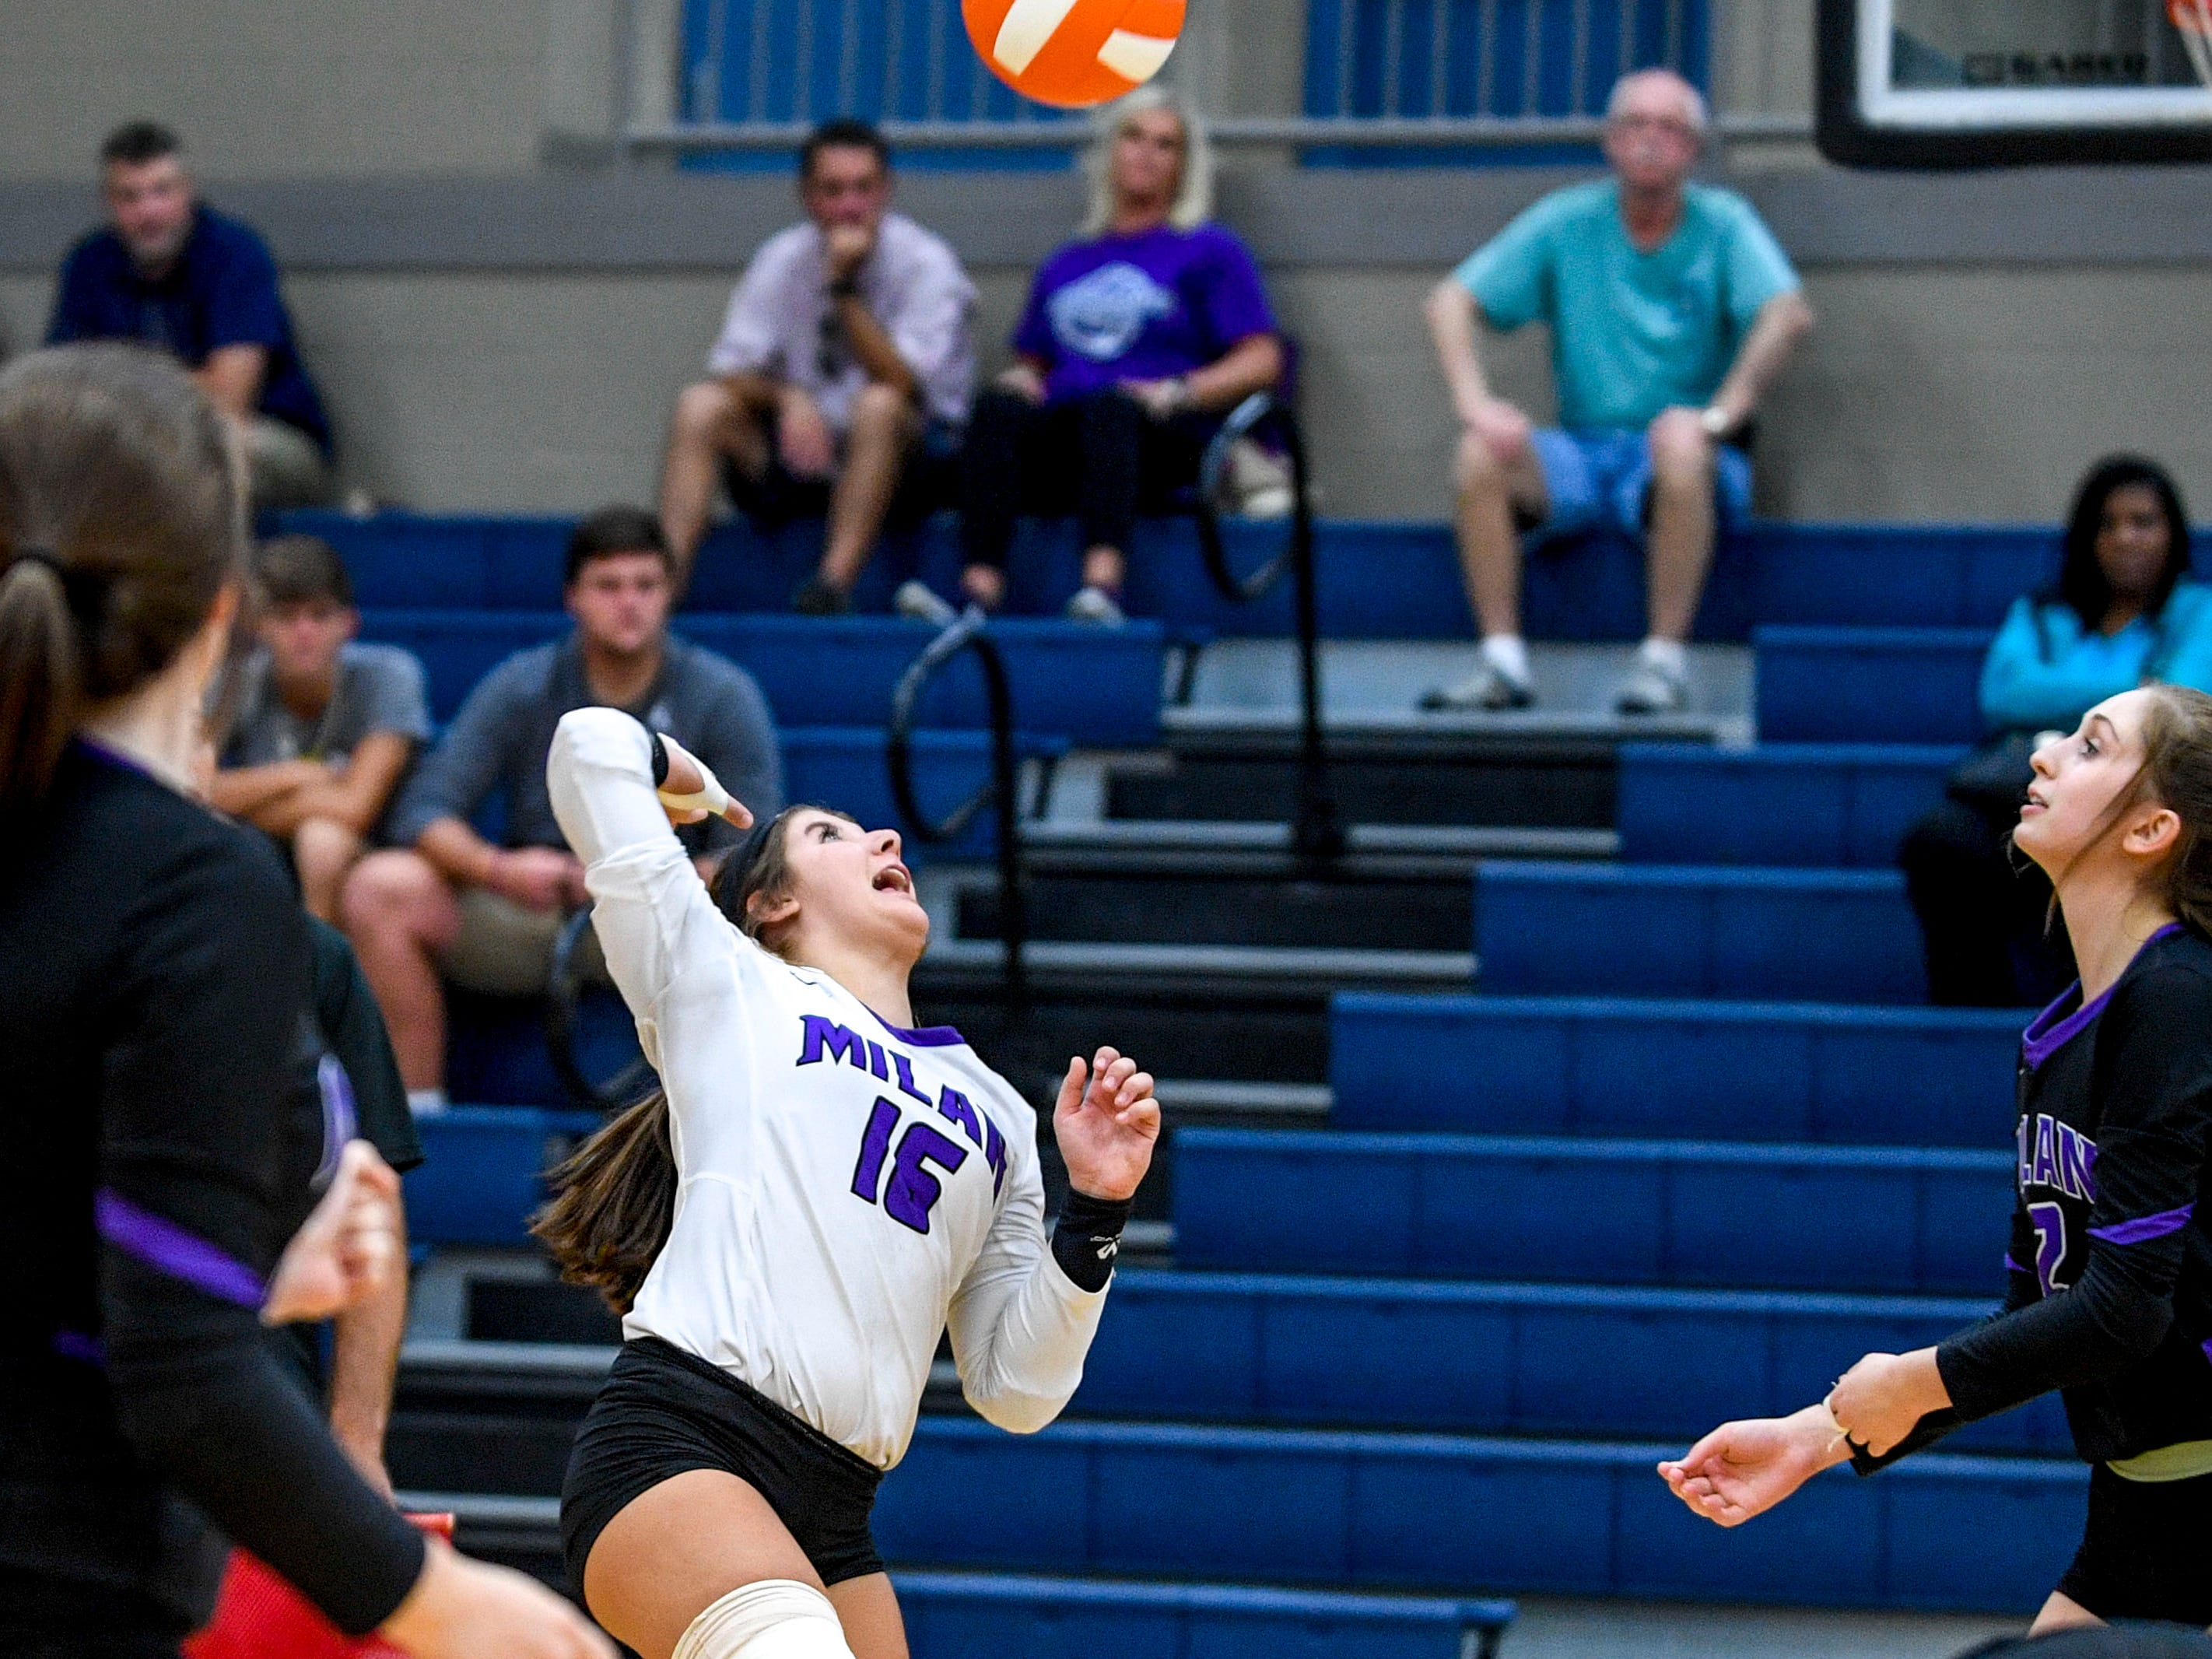 Bailee Graves (16) jumps to return a serve in a TSSAA volleyball game between Milan High School and South Gibson County at South Gibson County High School in Medina, Tenn., on Thursday, Sept. 13, 2018.